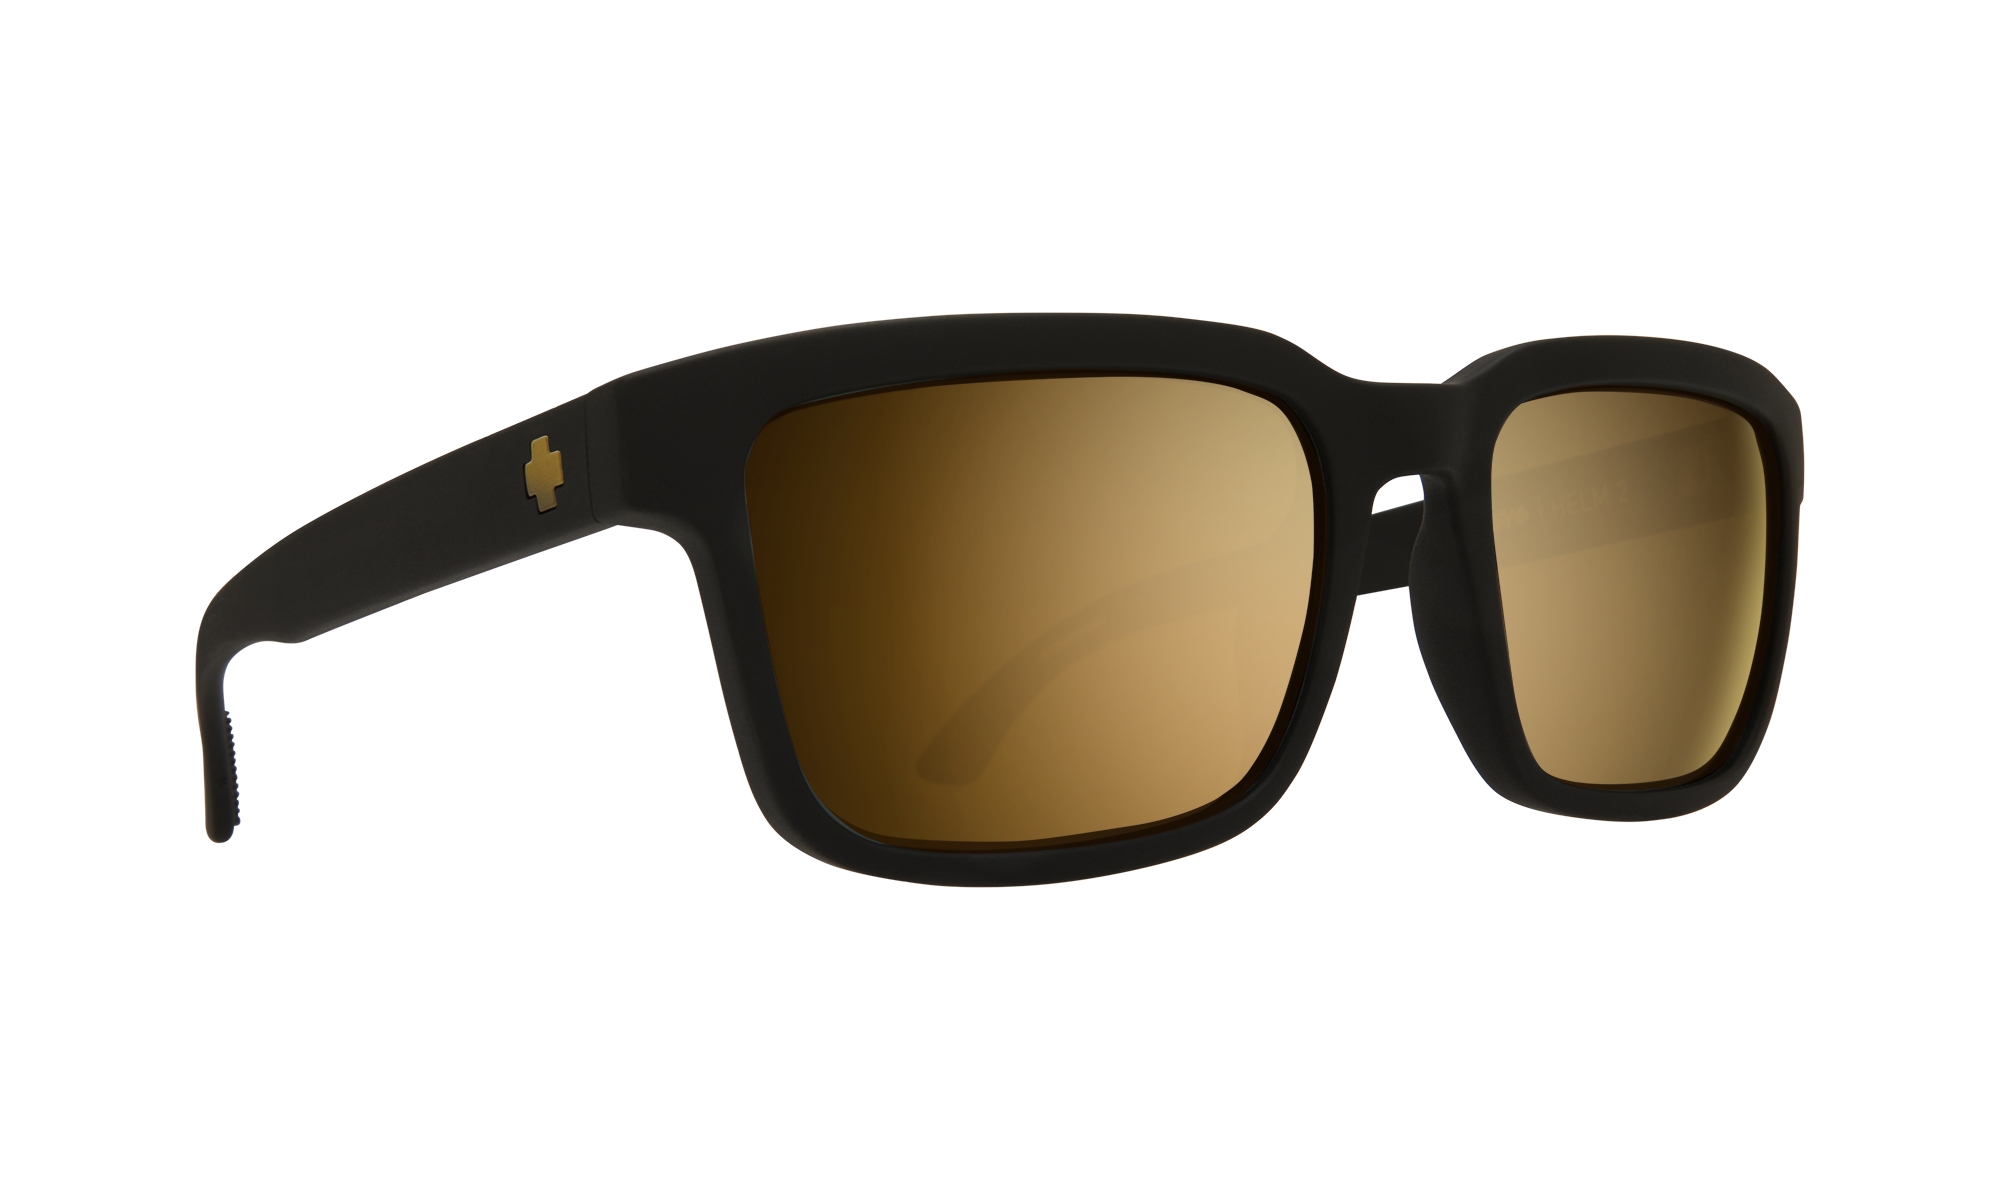 1cb5f5f504a Helm 2 Sunglasses